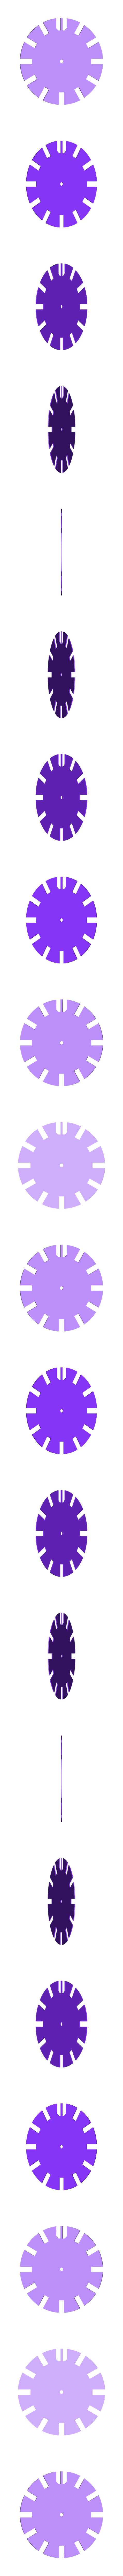 Watch_Face.stl Download free STL file Modular Wristwatch - 3D Printing Build • Object to 3D print, Adylinn